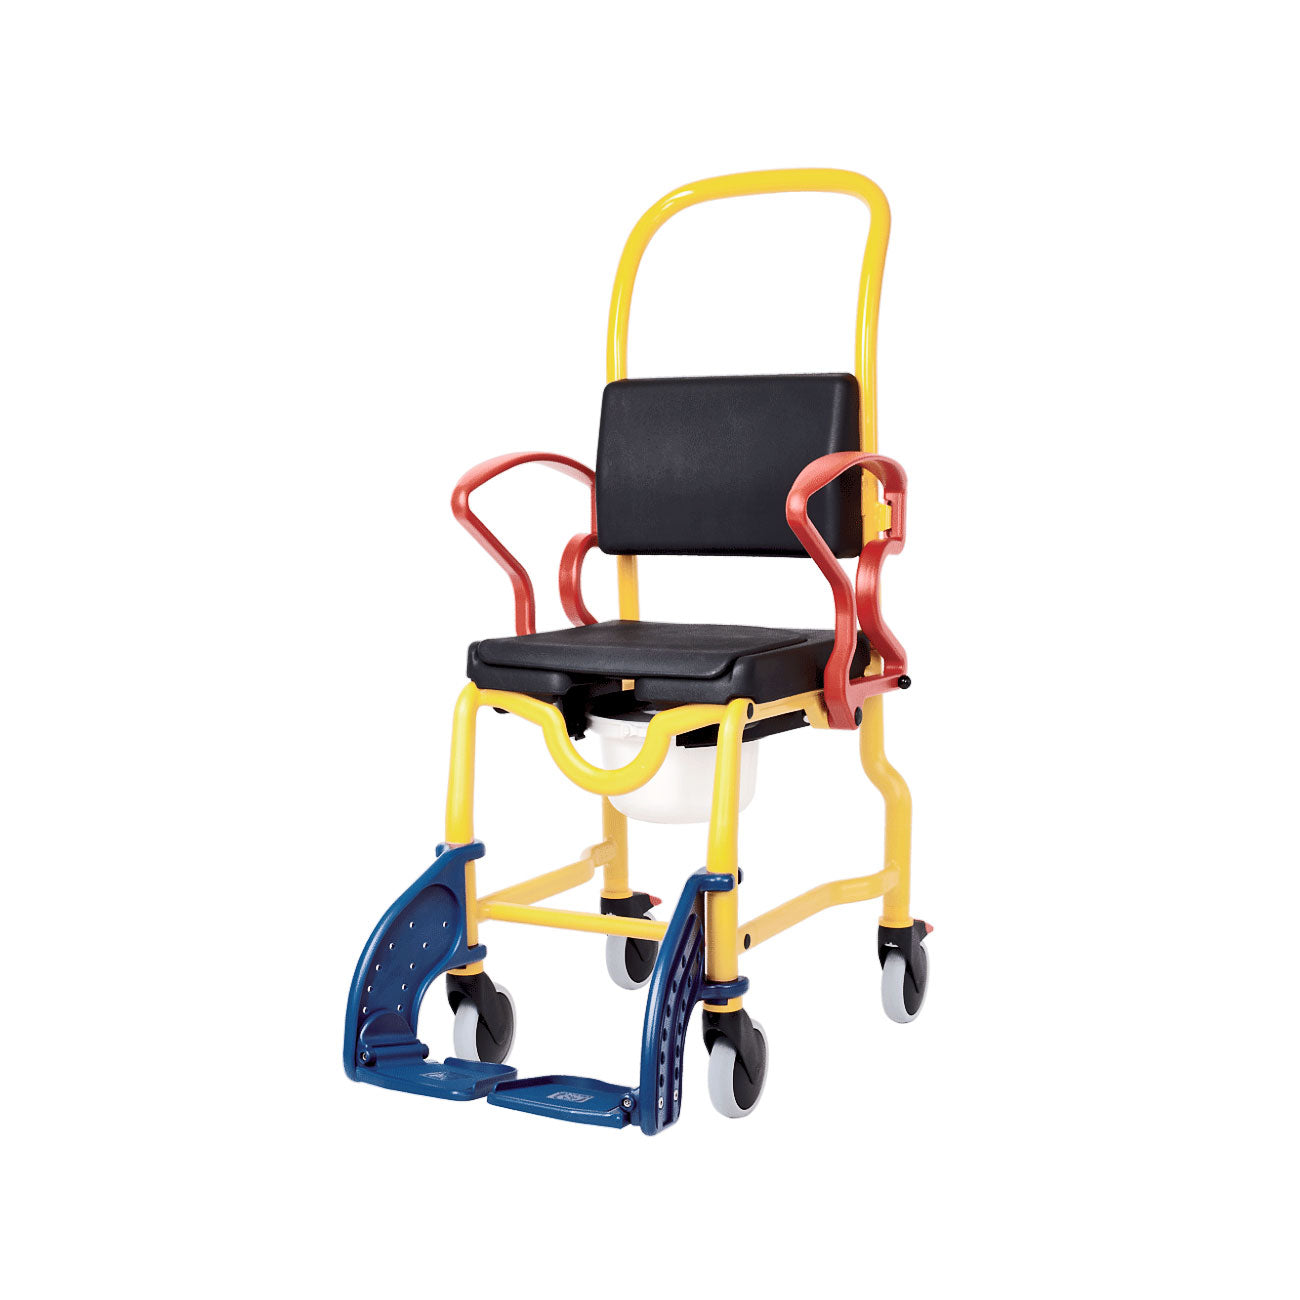 Rebotec Augsburg - Shower Commode Chair For Children